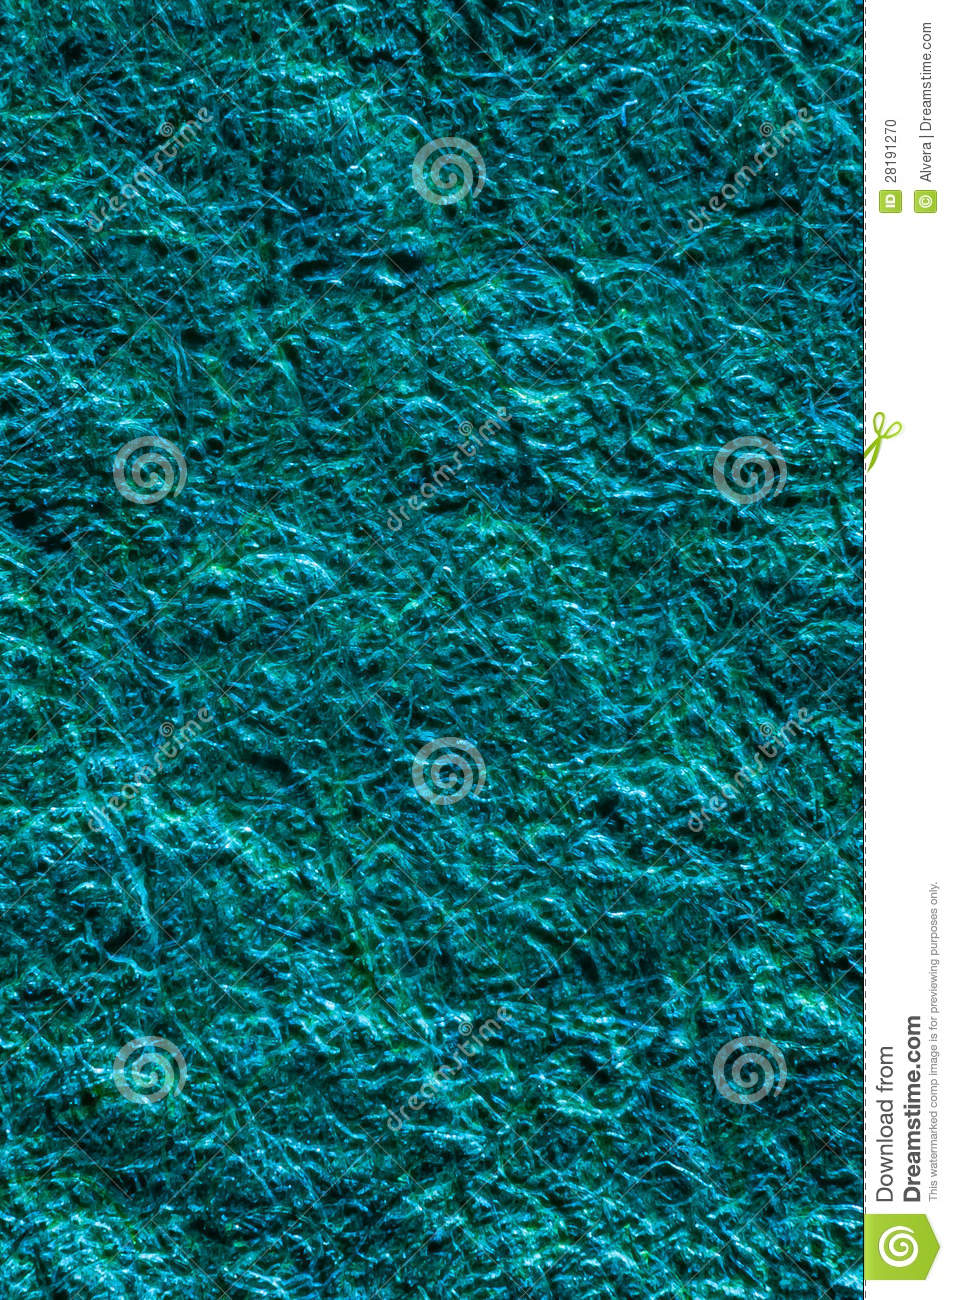 Blue Aqua Shiny Plastic Fiber Background Texture Stock